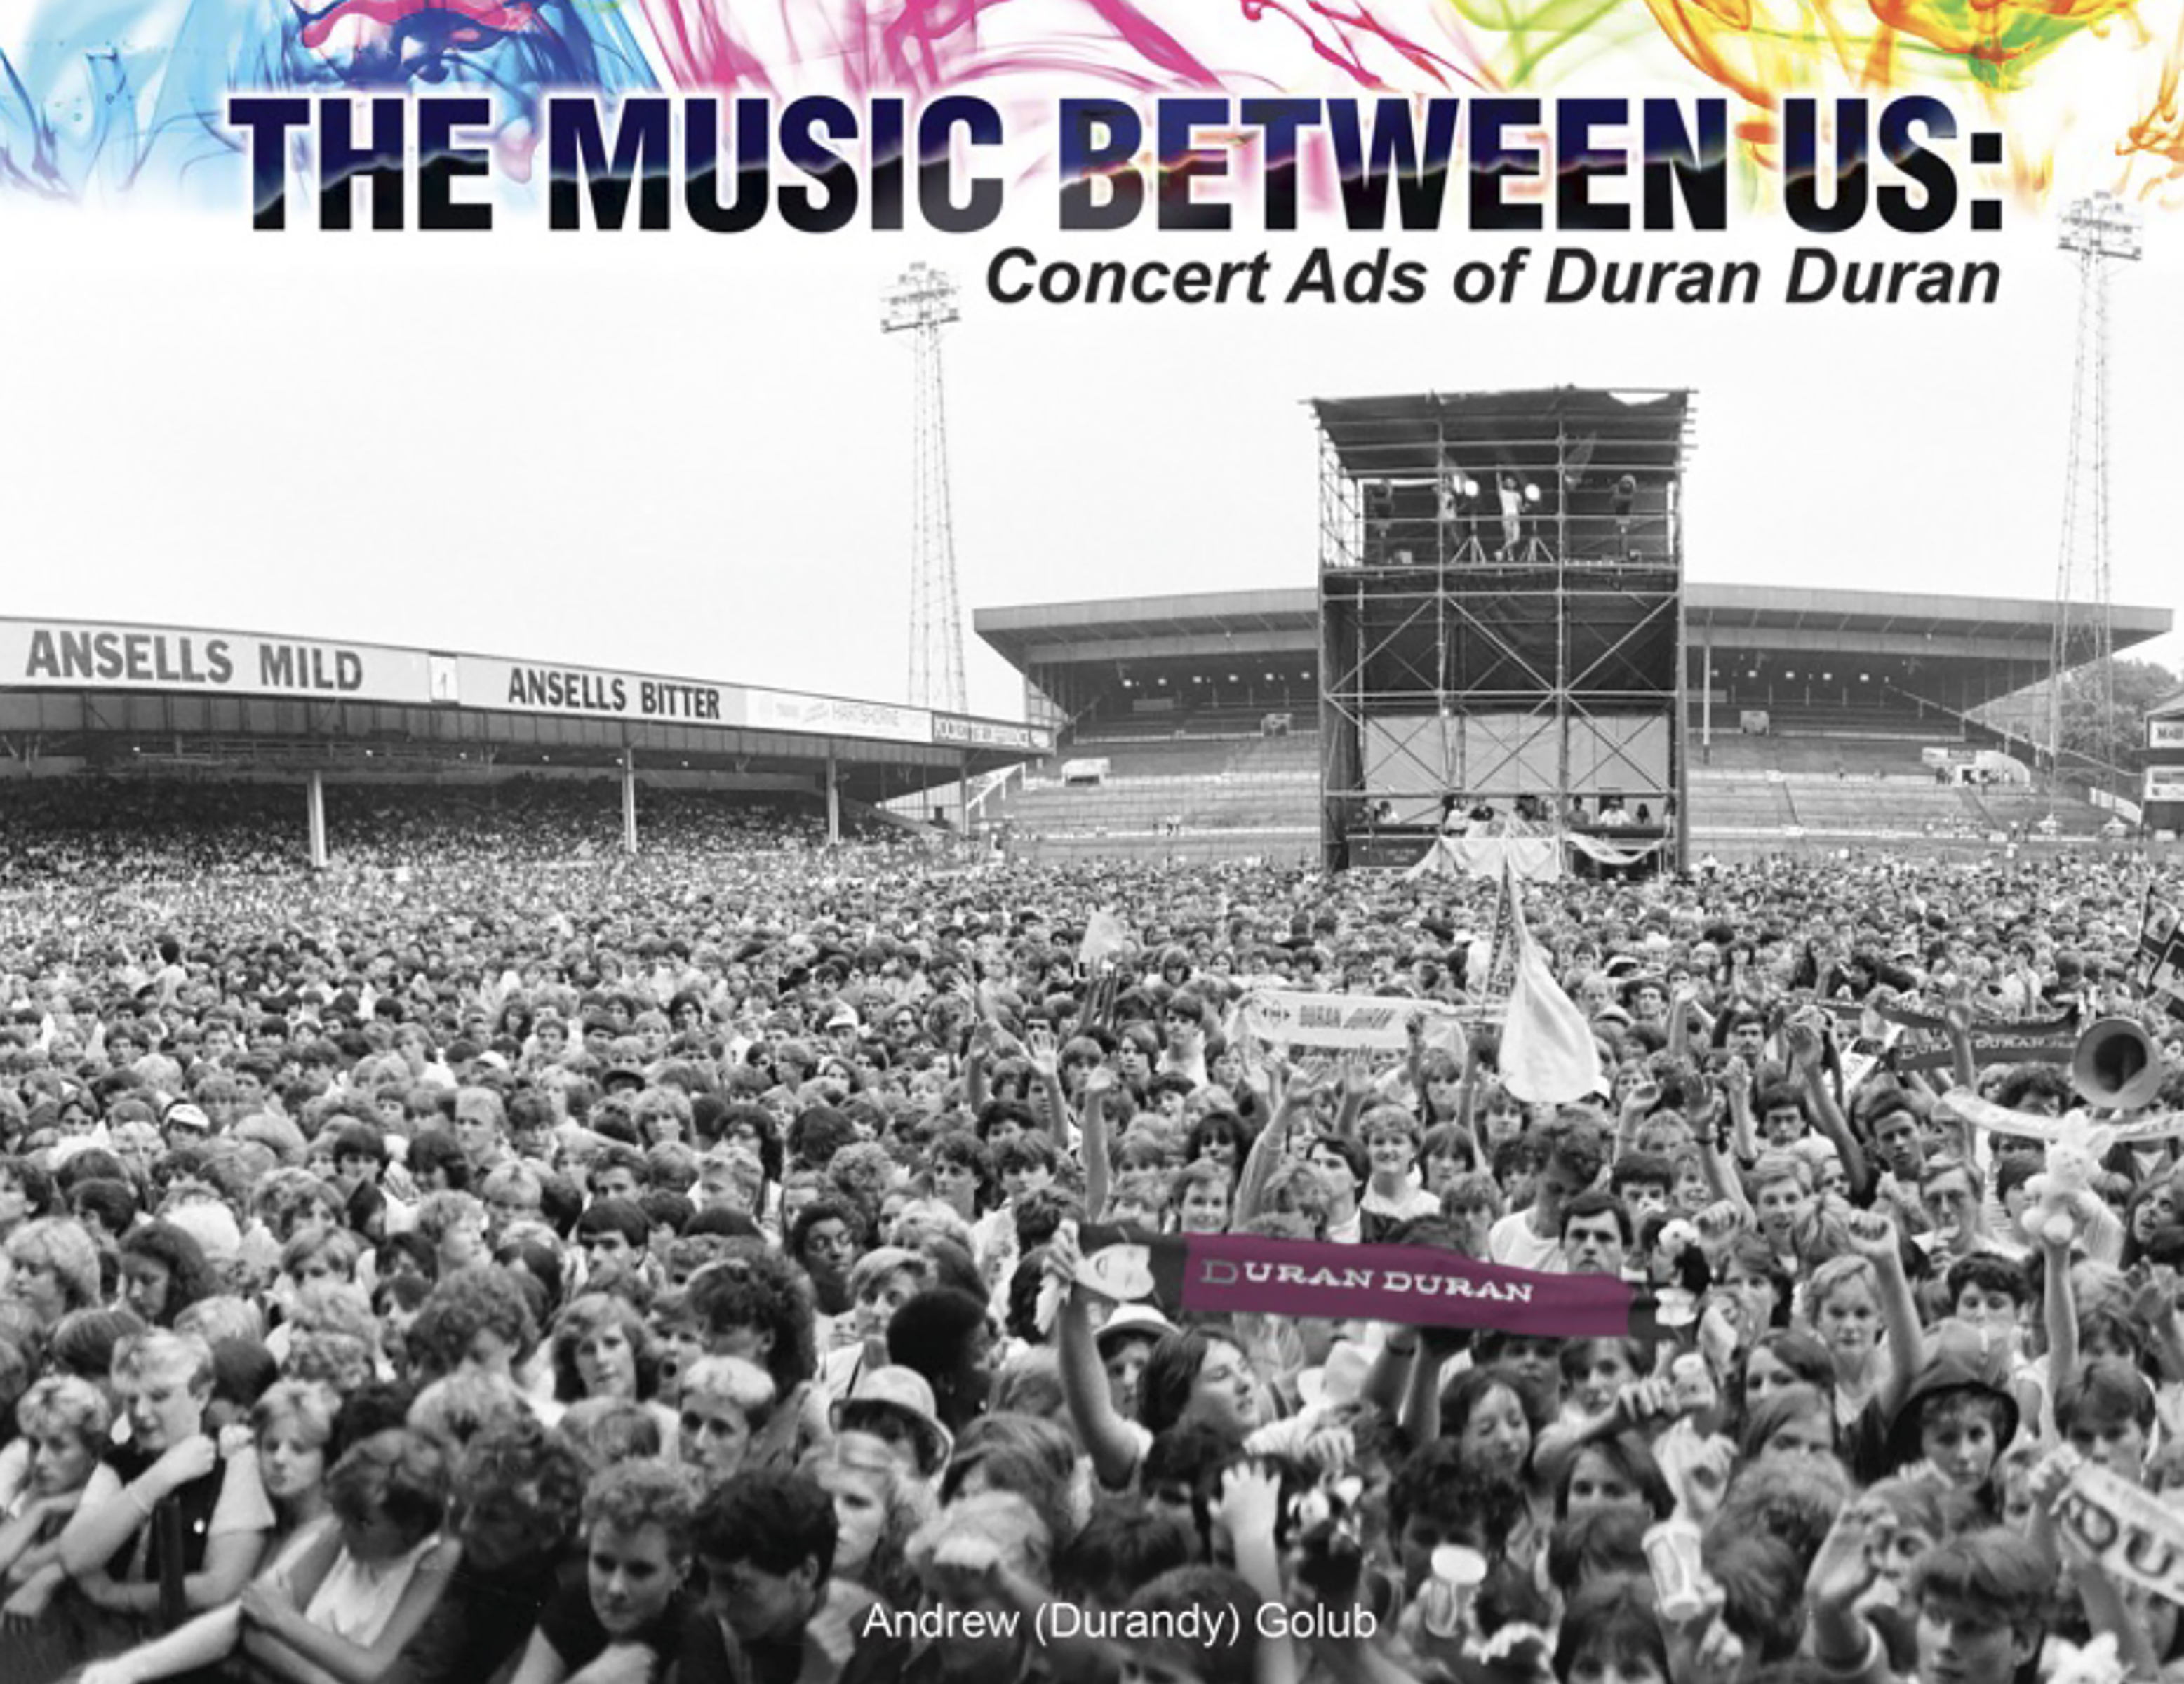 The Music Between Us: Concert Ads of Duran Duran